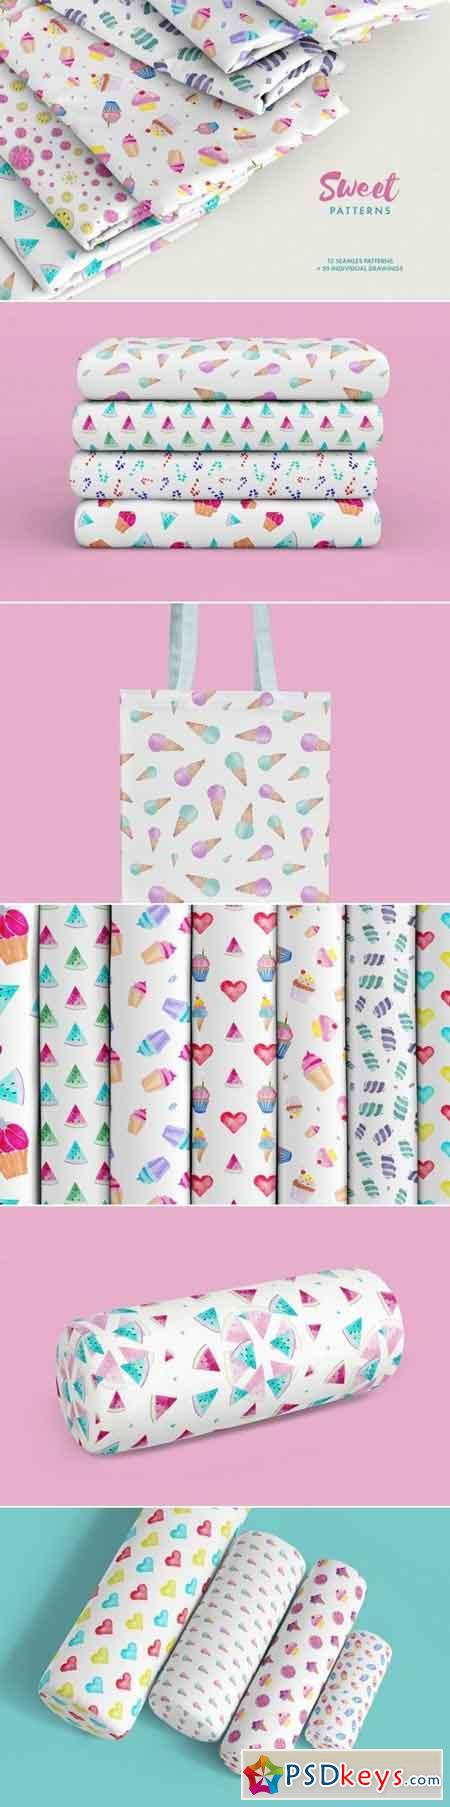 Watercolor Sweet Patterns 3477781